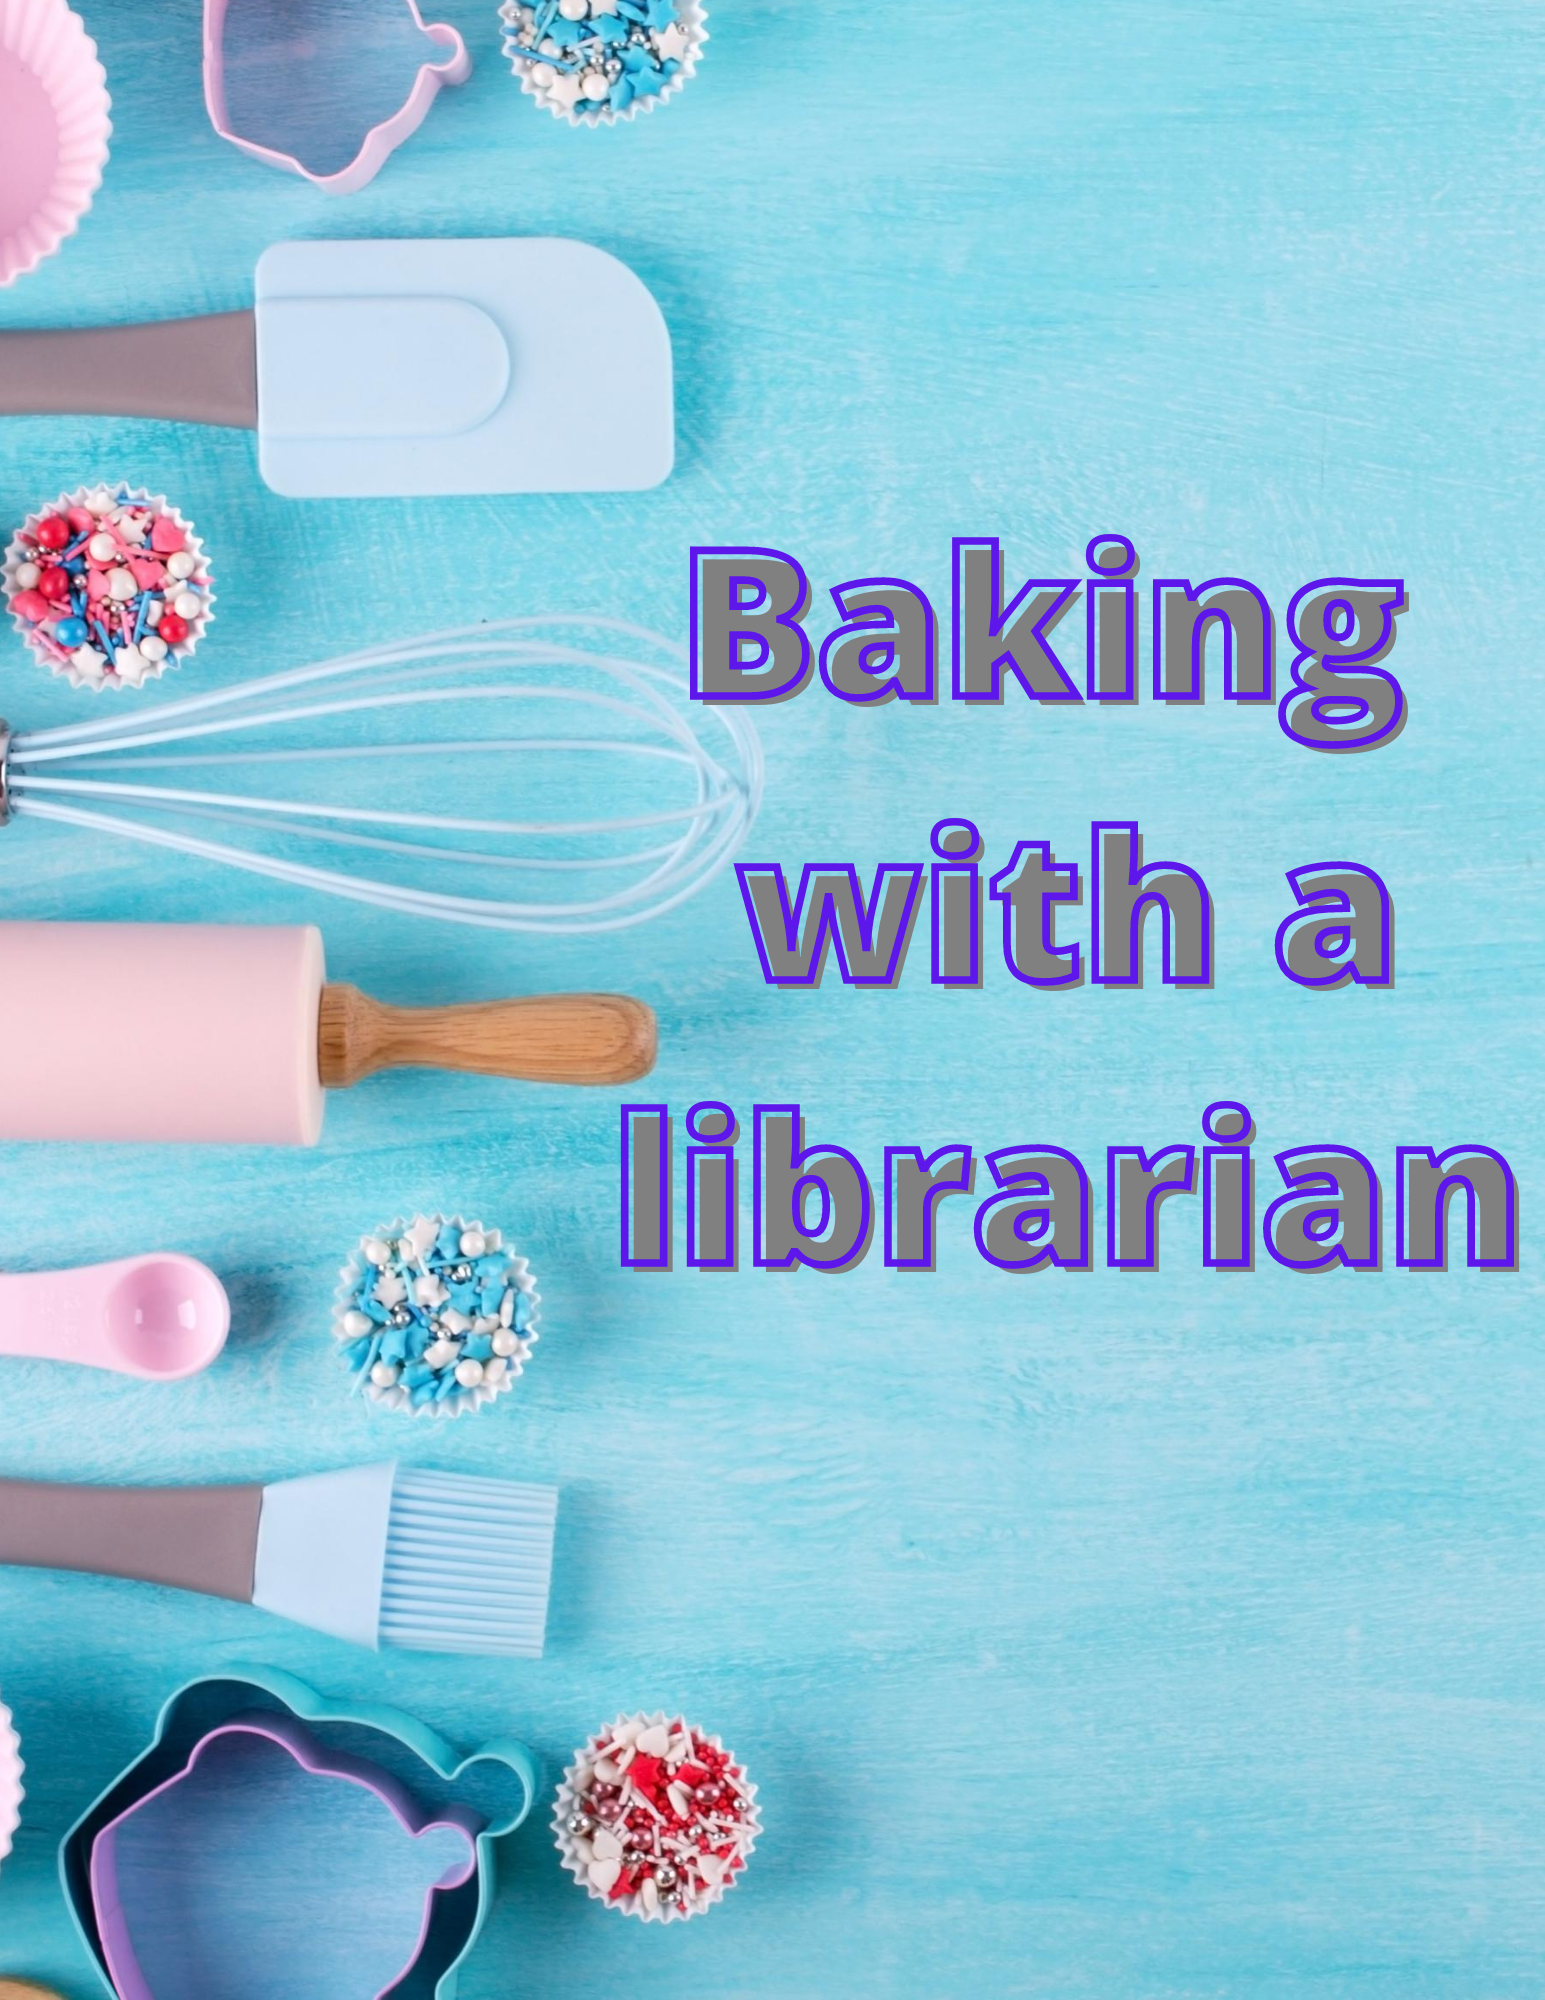 Baking with a librarian